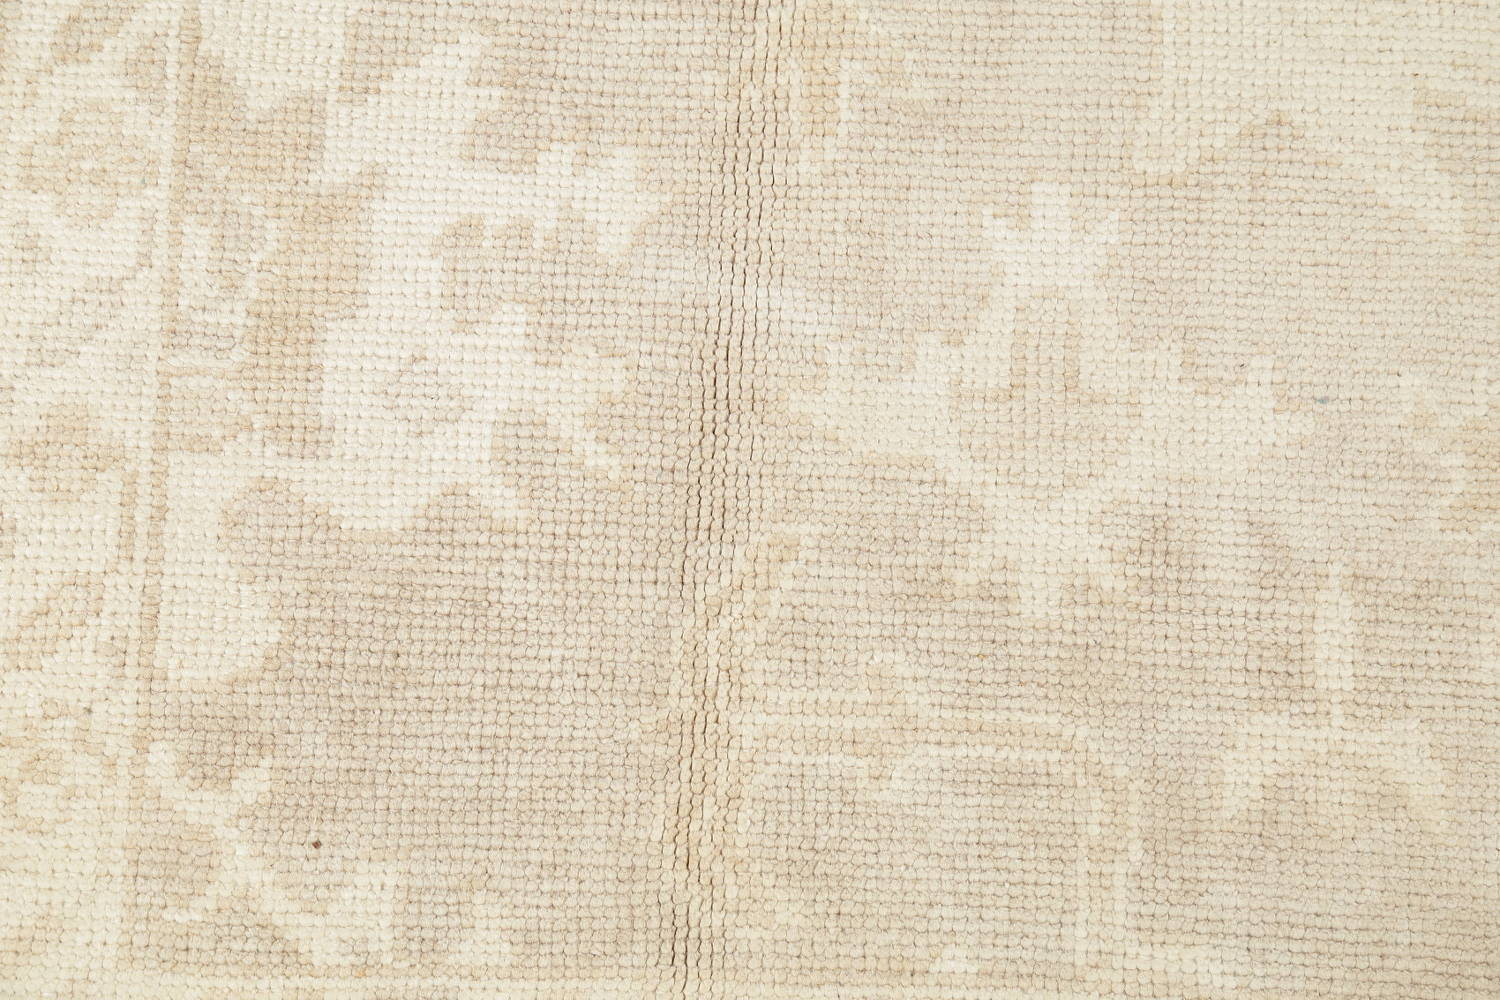 Vegetable Dye Muted Oushak Turkish Hand-Knotted Area Rug 8x16 image 7